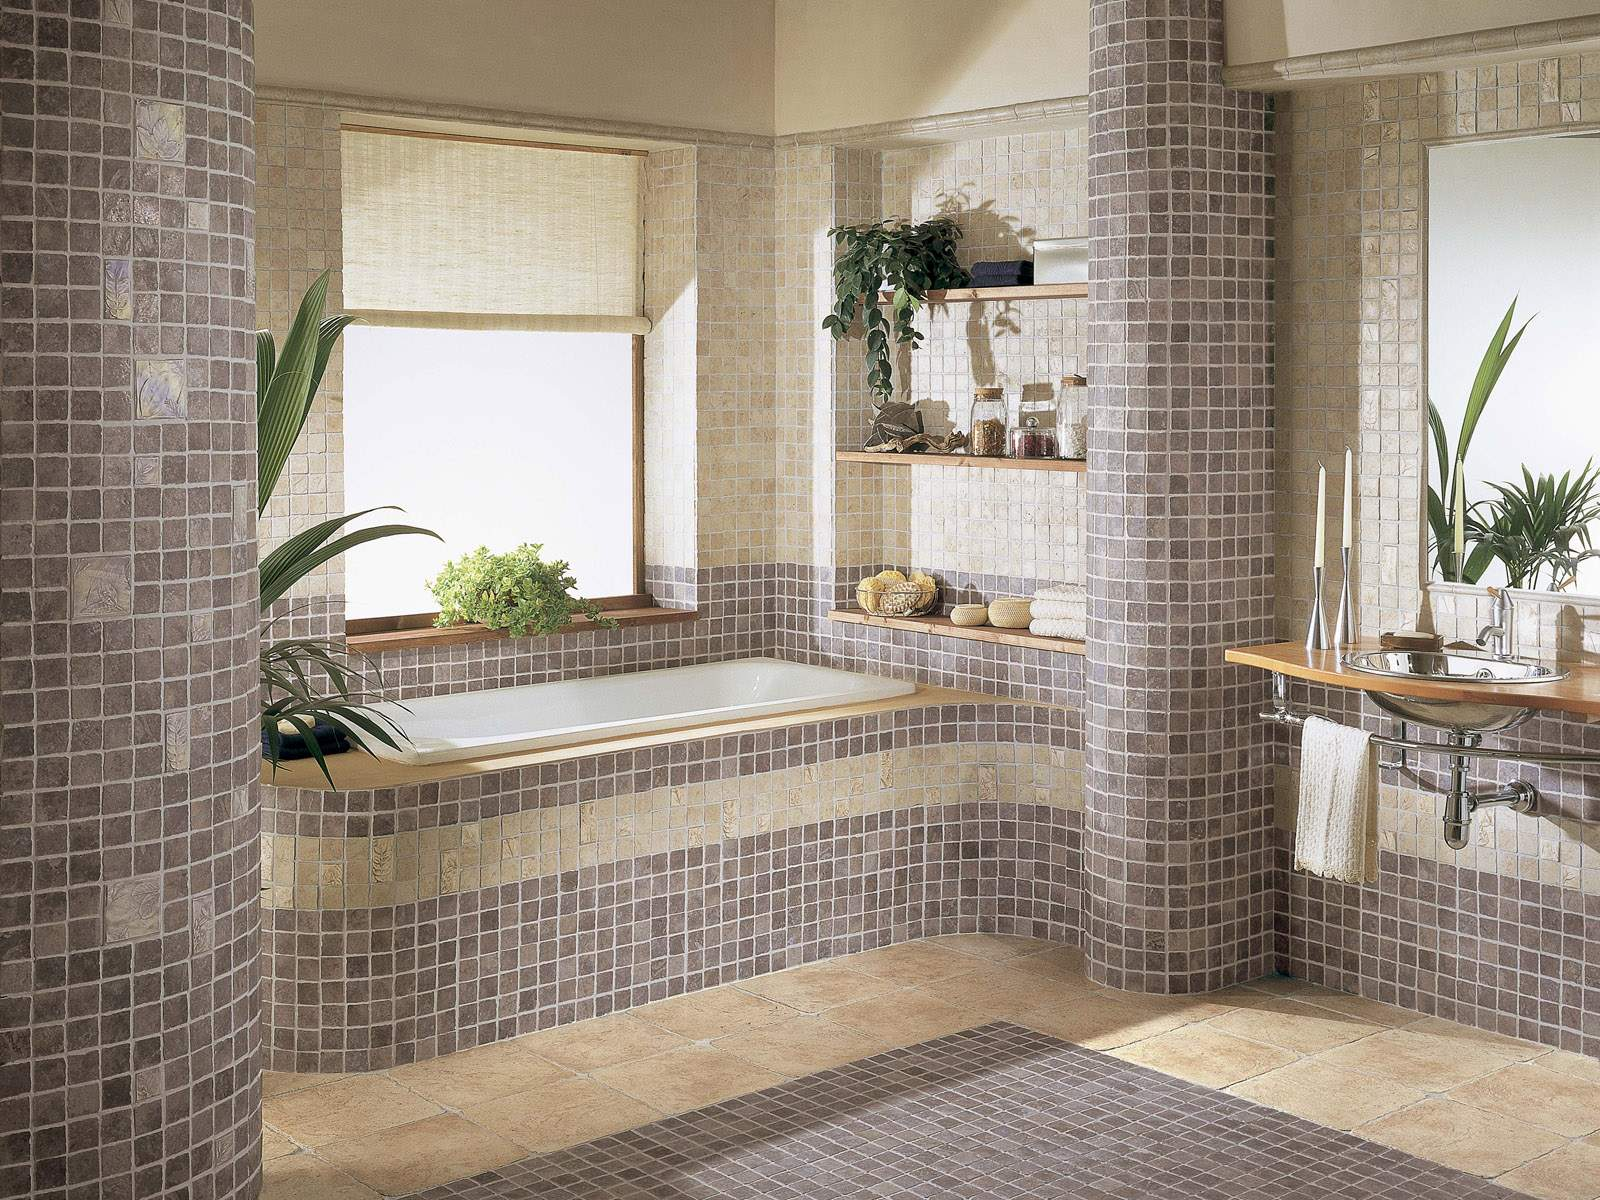 interior-design-luxury-remodel-bathroom-ideas-showing-white-rectangular-bathtubs-under-glass-windows-by-blinds-near-natural-wooden-shelves-as-well-as-bathroom-remodel-also-bathroom-vanities